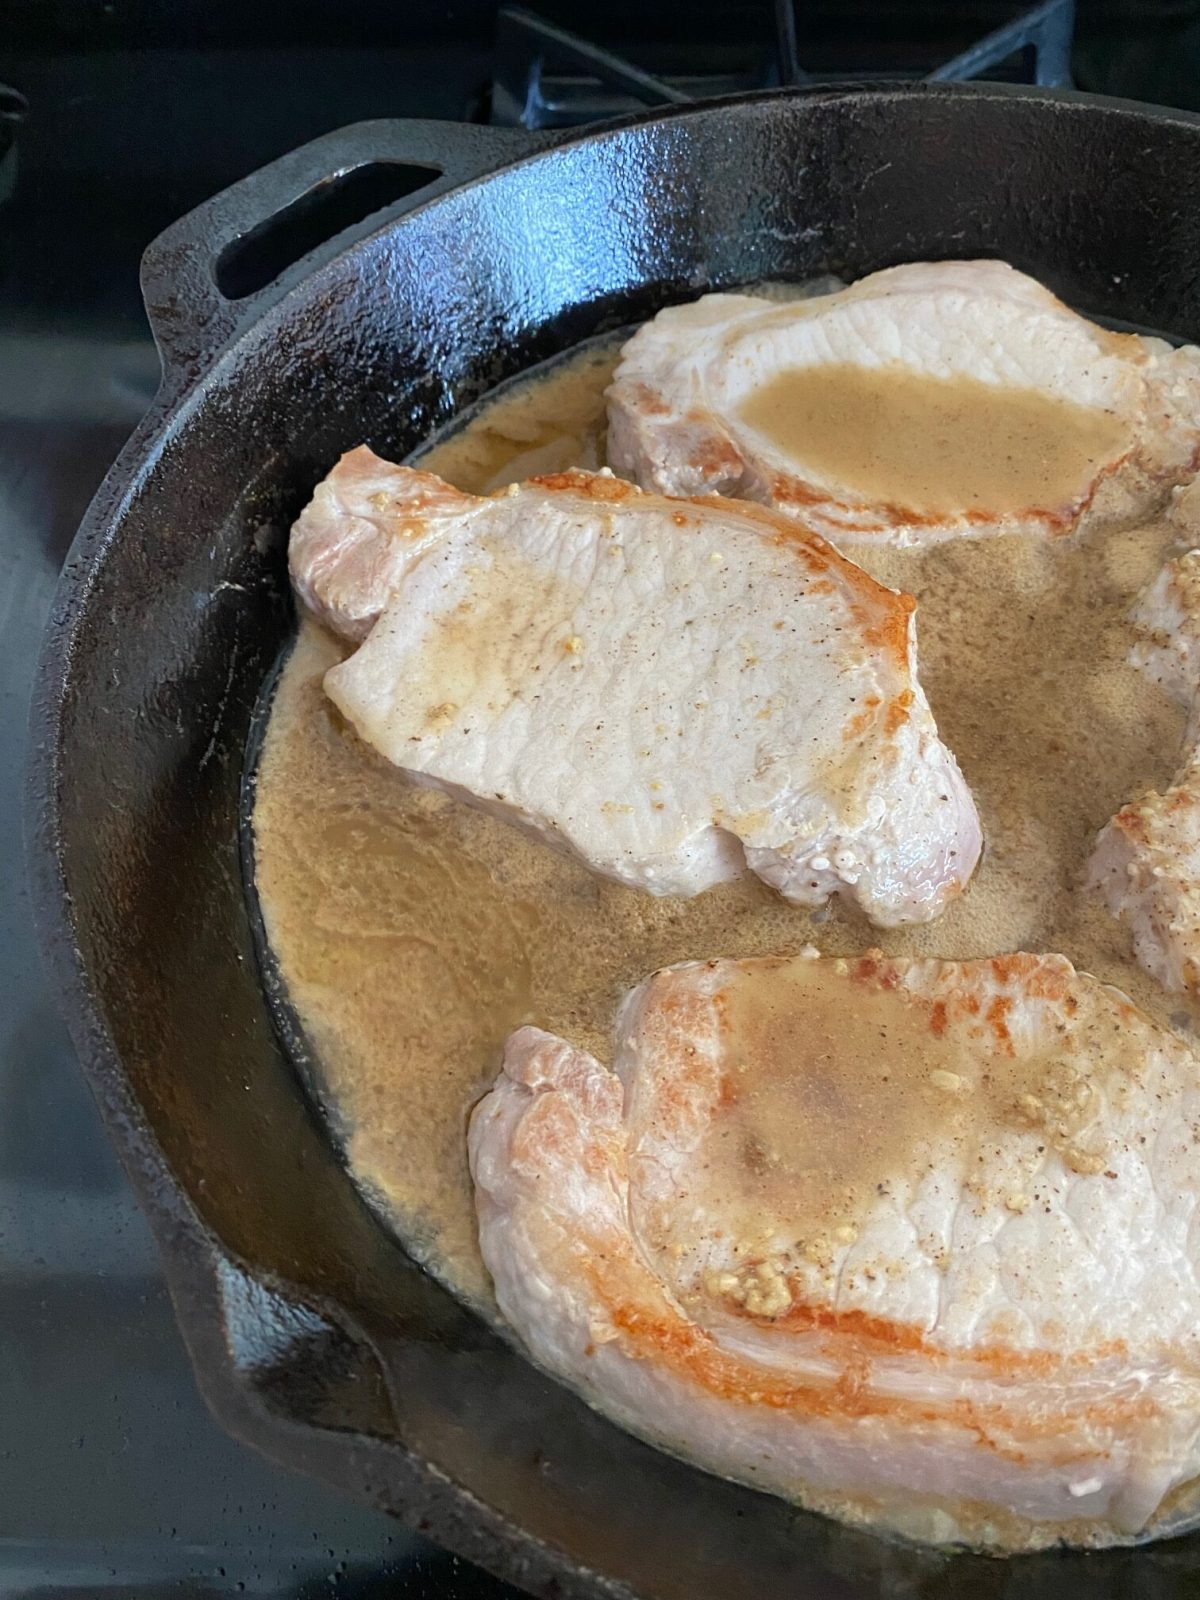 Apple cider mixture poured over the pork chops in a cast iron skillet. #appleciderporkchops #fallrecipes #falldinnerrecipes #coldweatherrecipes #castironskilletrecipes #skilletdinnerrecipes #onepotdinnerrecipes